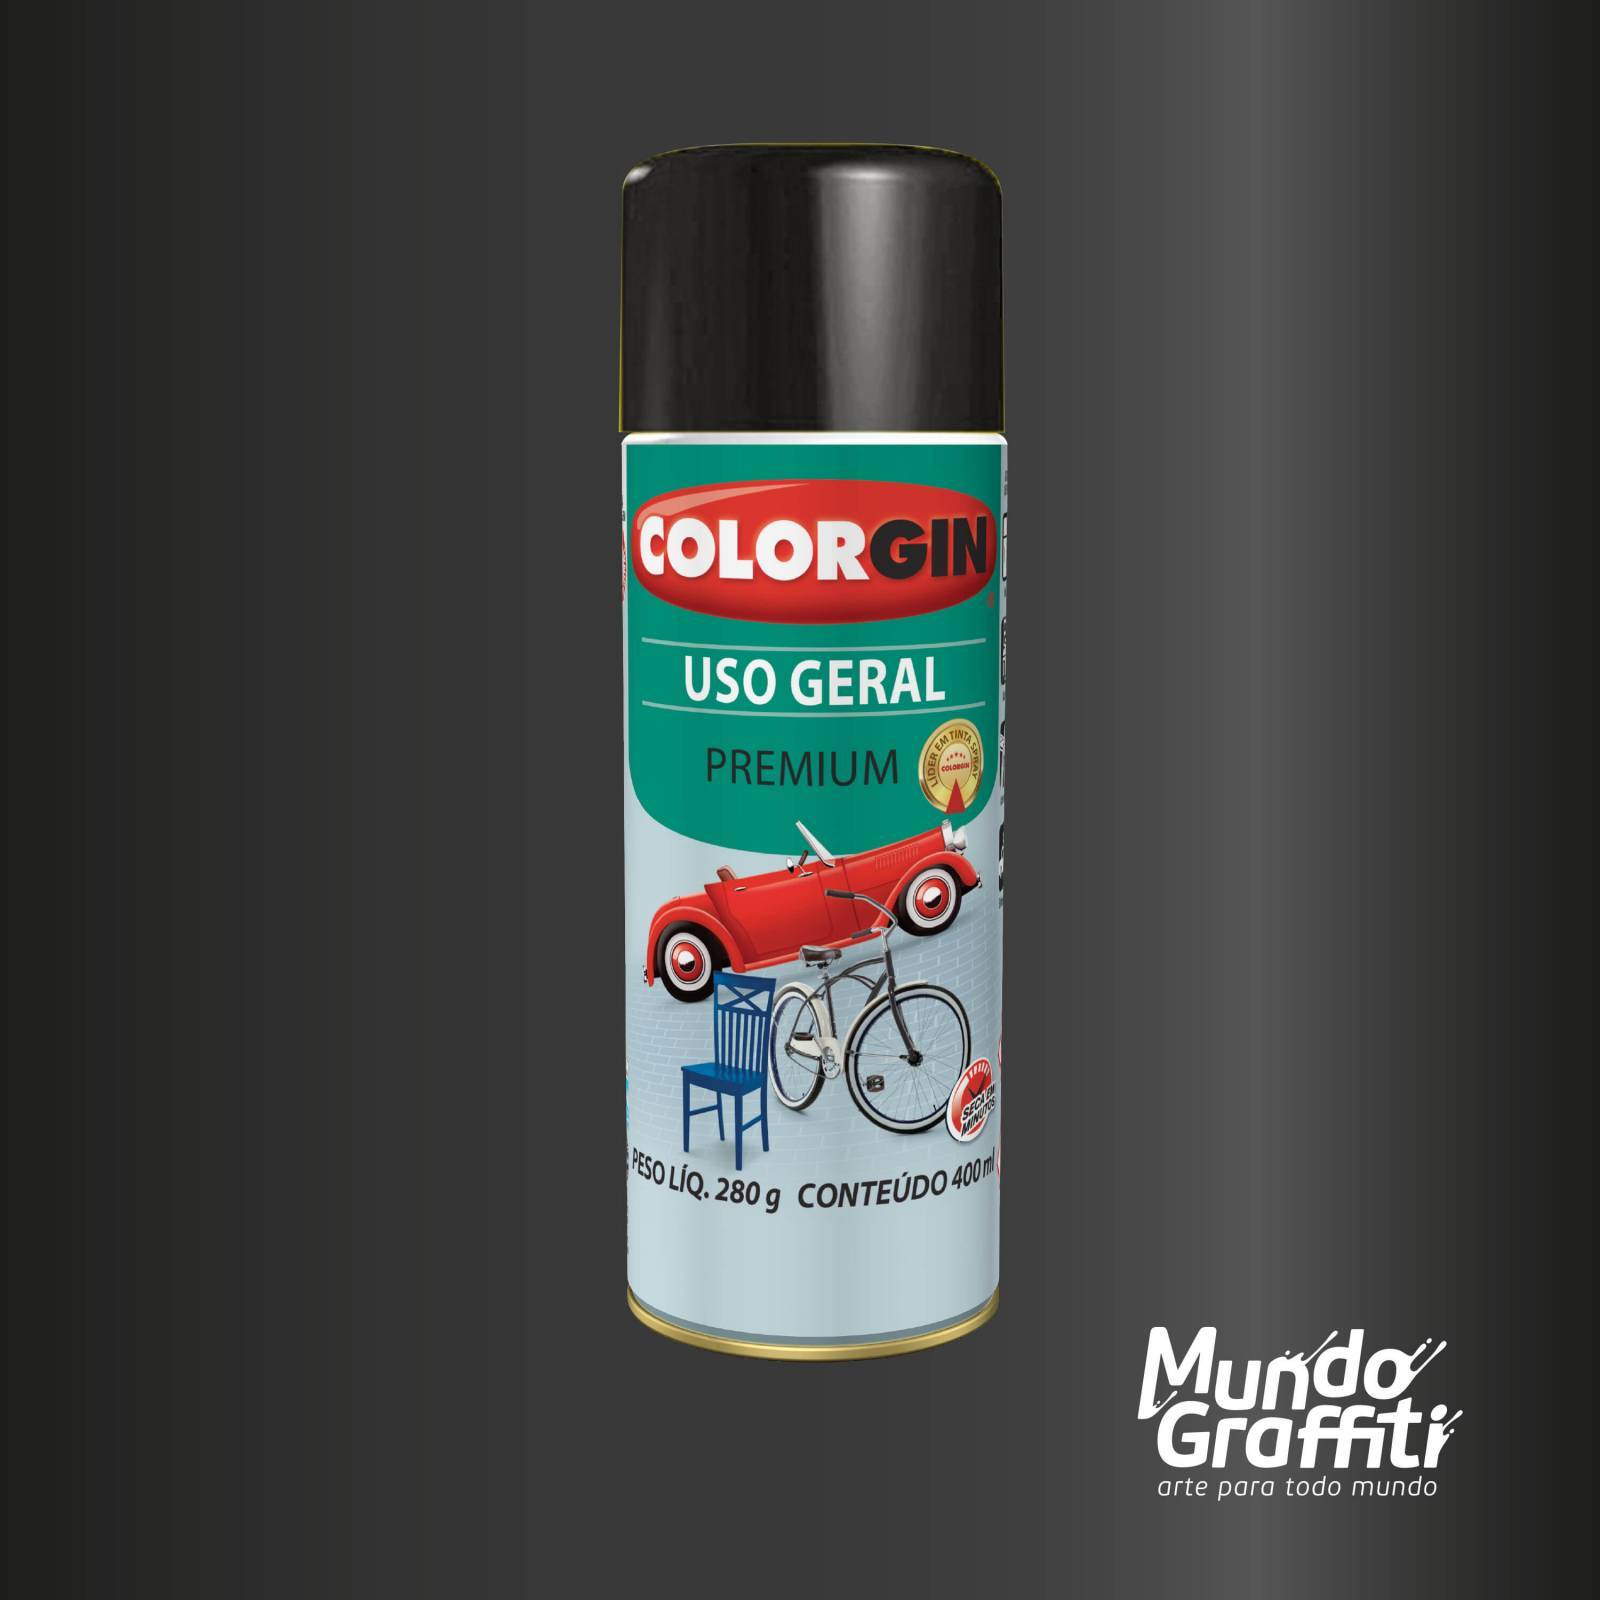 Tinta Spray Colorgin Uso Geral 57151 Preto Star Metalico 400 - Mundo Graffiti